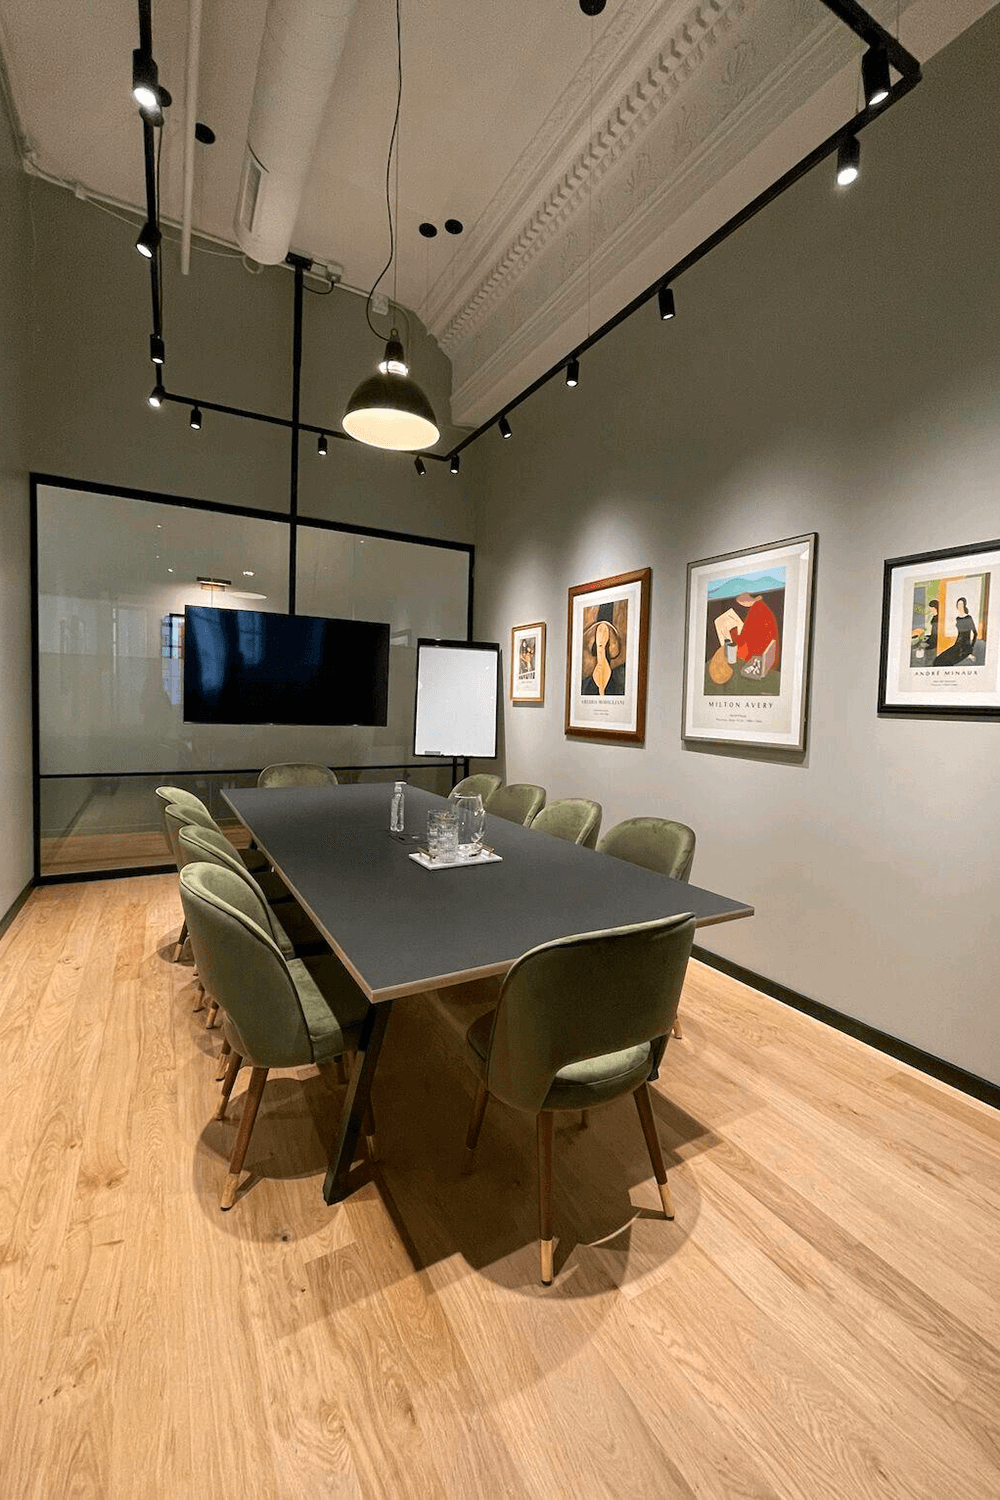 https://tableplacechairs.com/wp-content/uploads/2021/05/MINDSPACE-PHILADELPHIA-for-web-5.png